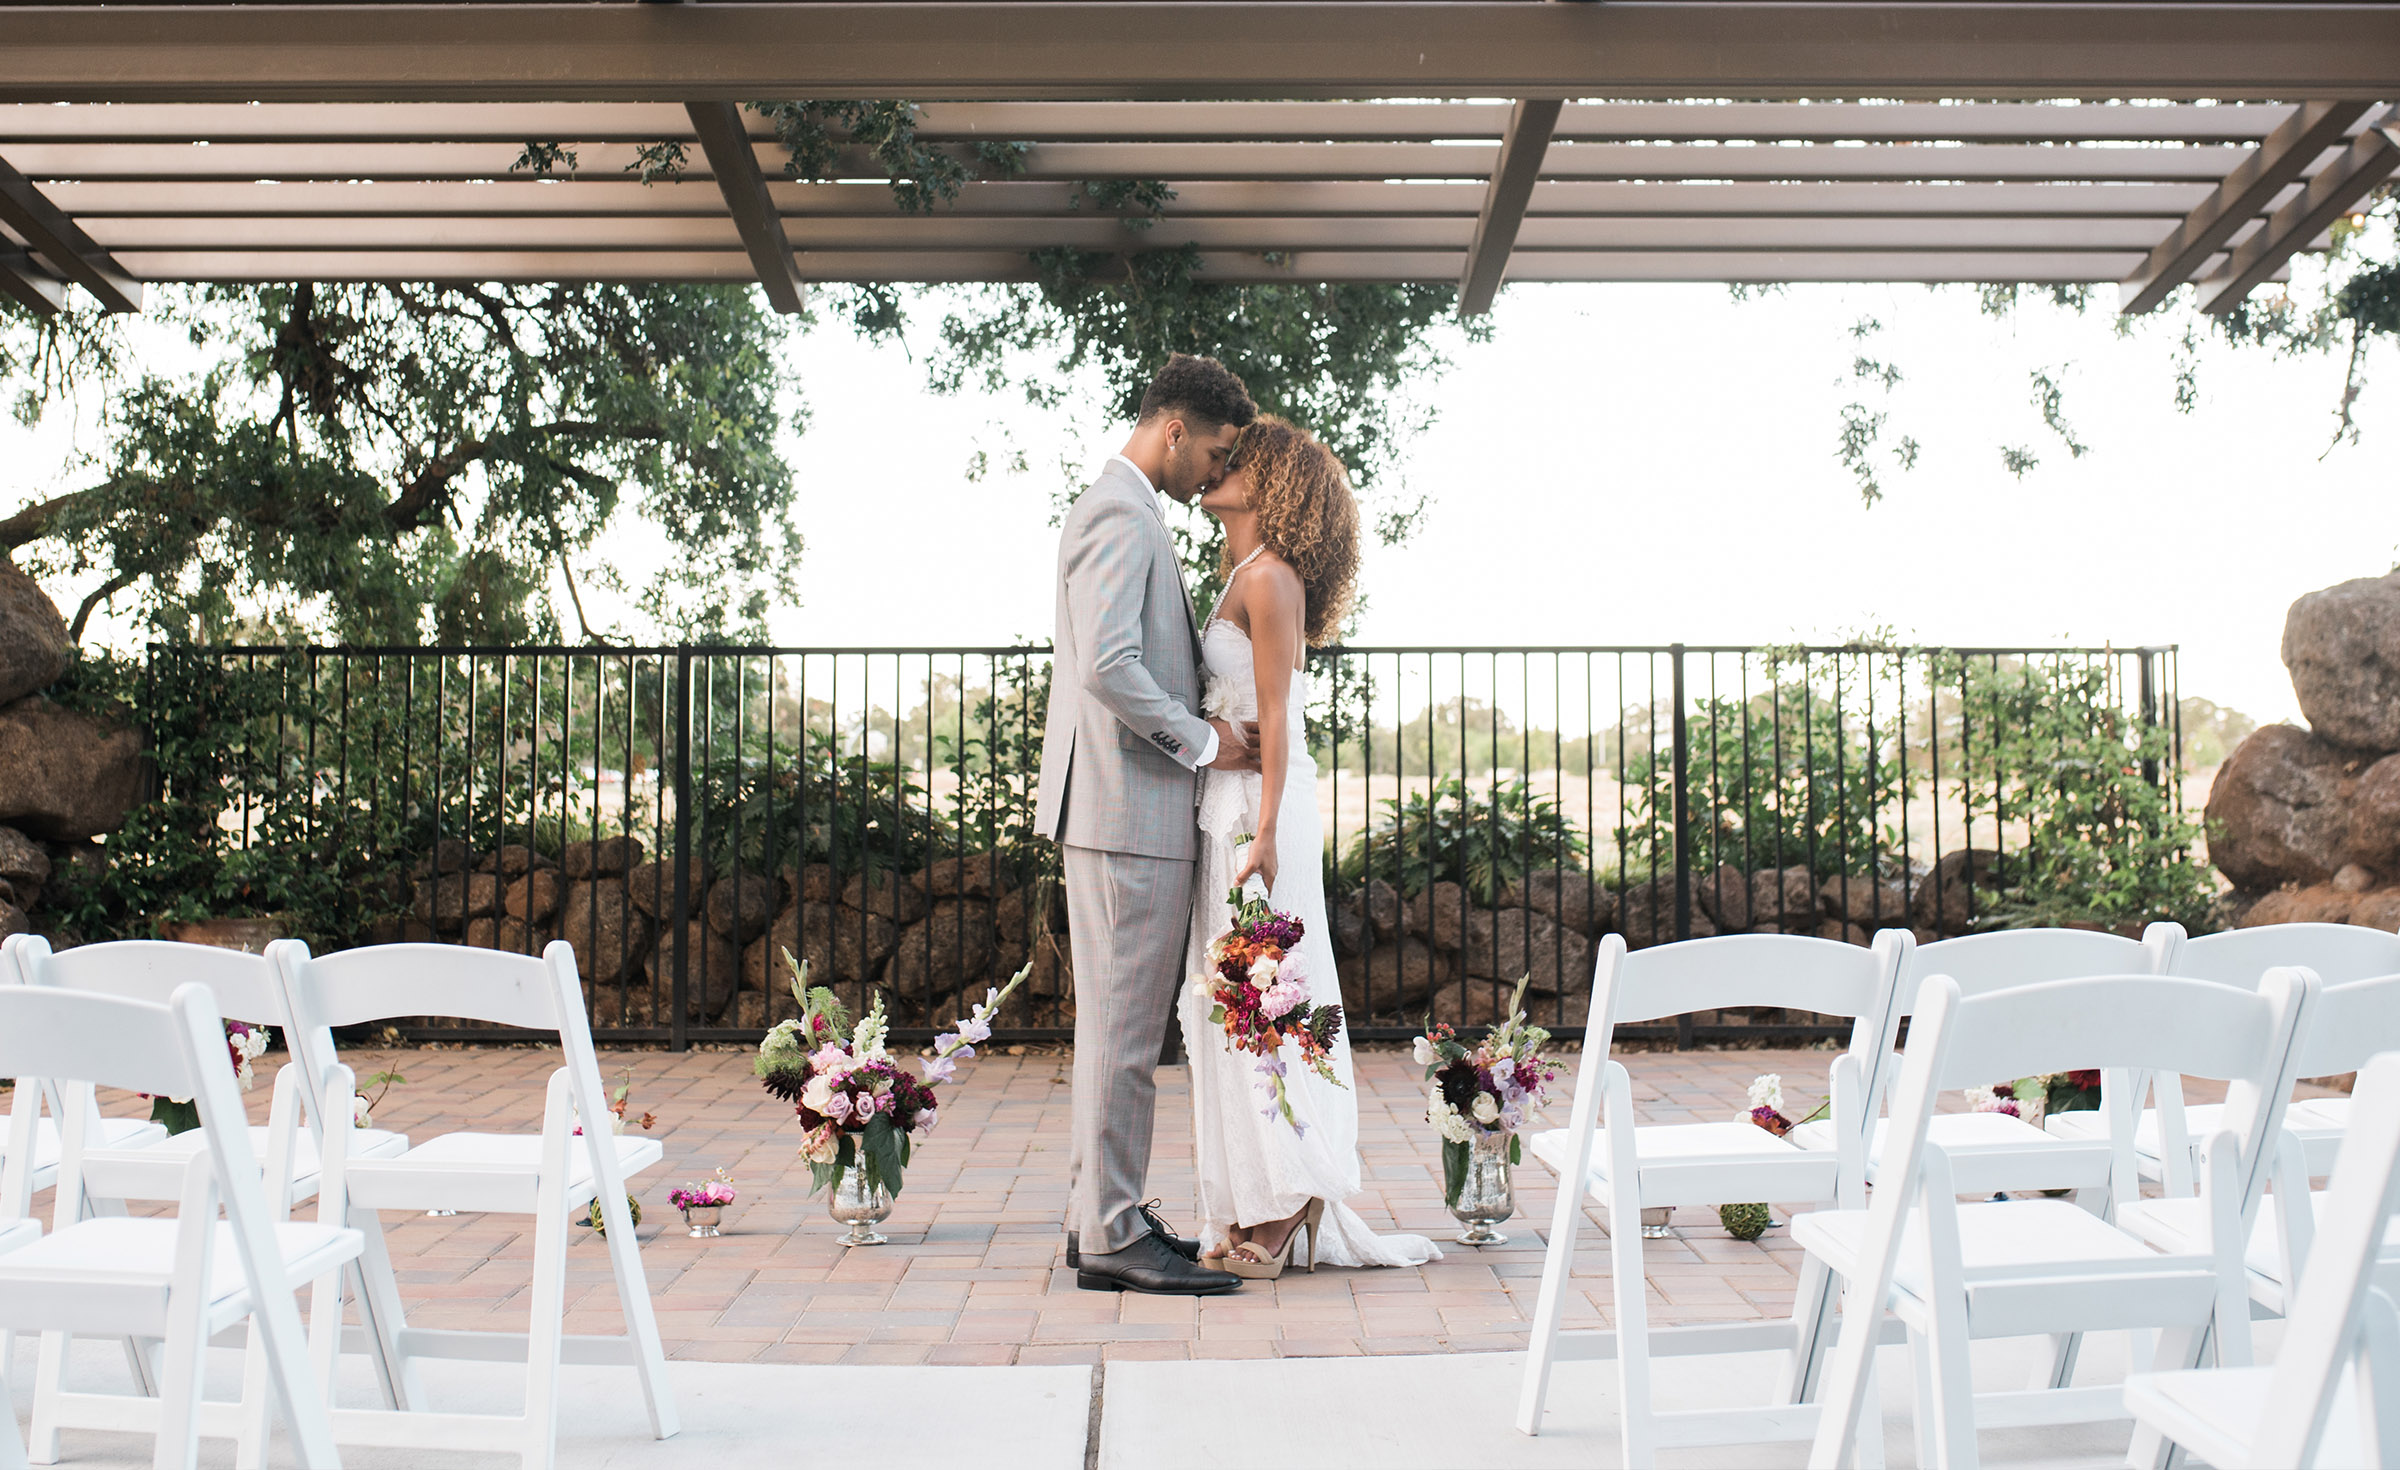 Bride and Groom at outdoor ceremony site - Evergreen Springs - Elk Grove, California - Sacramento County - Wedgewood Weddings